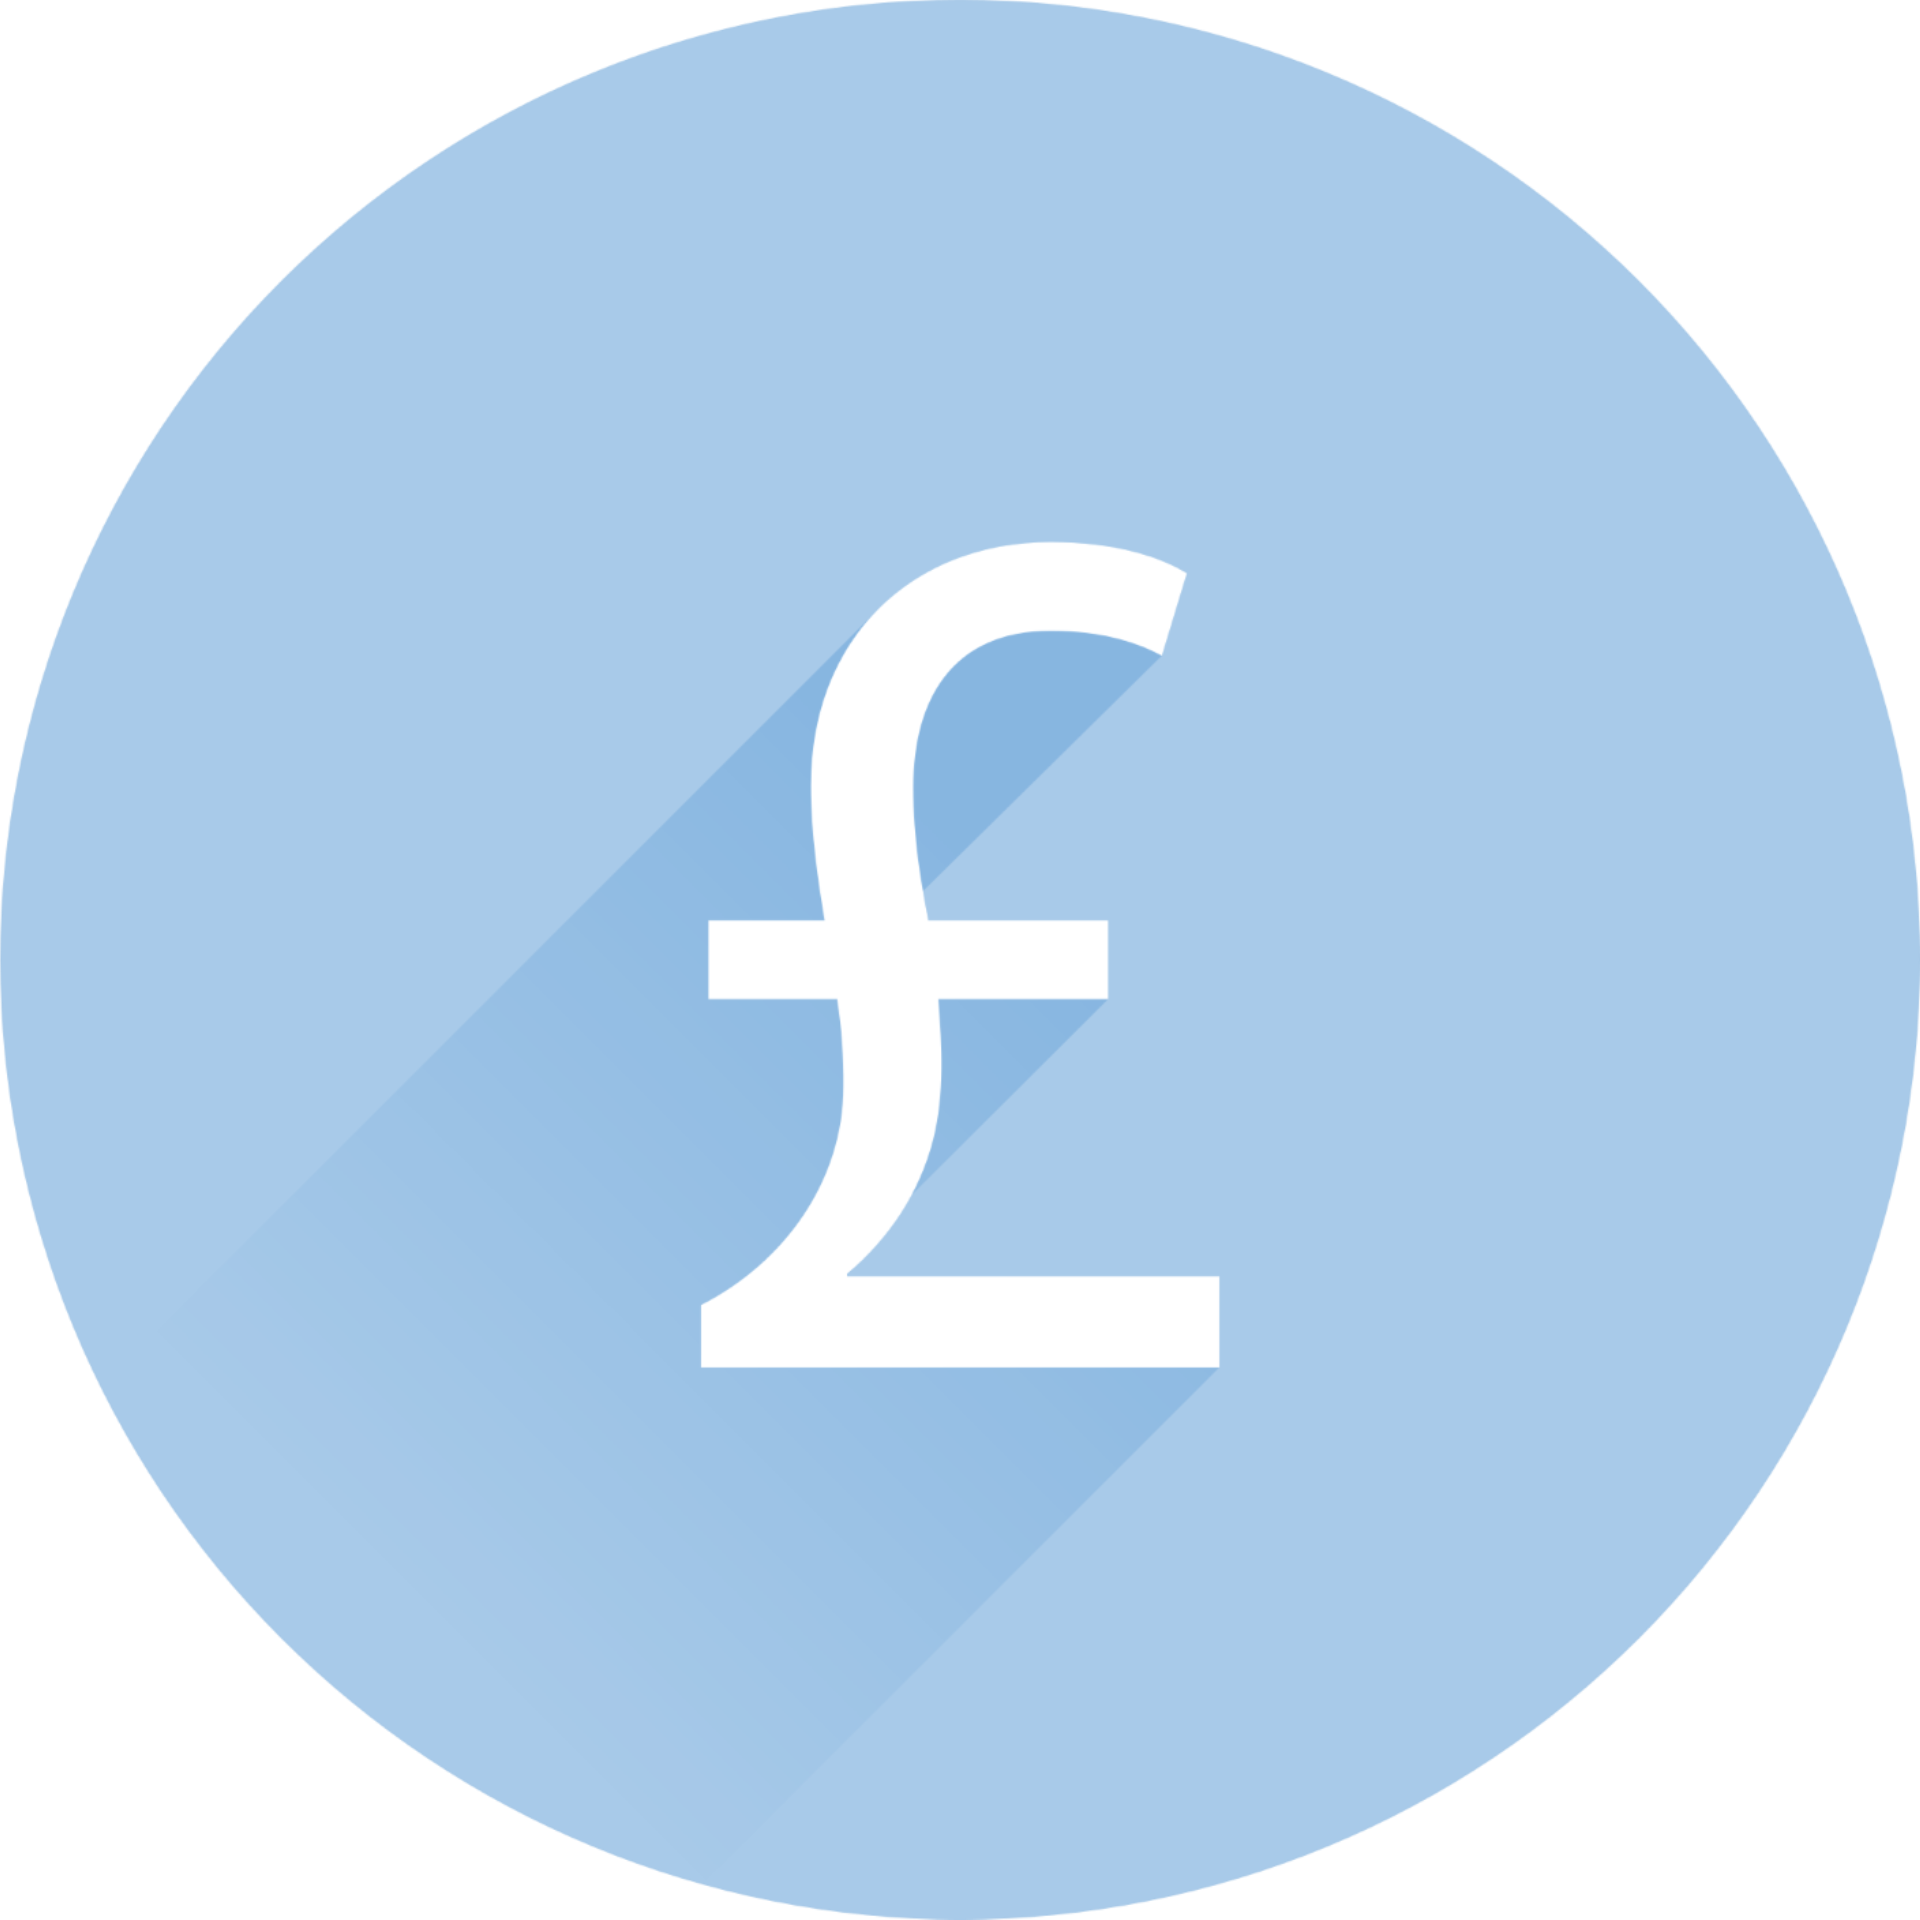 Branded Icon GBP